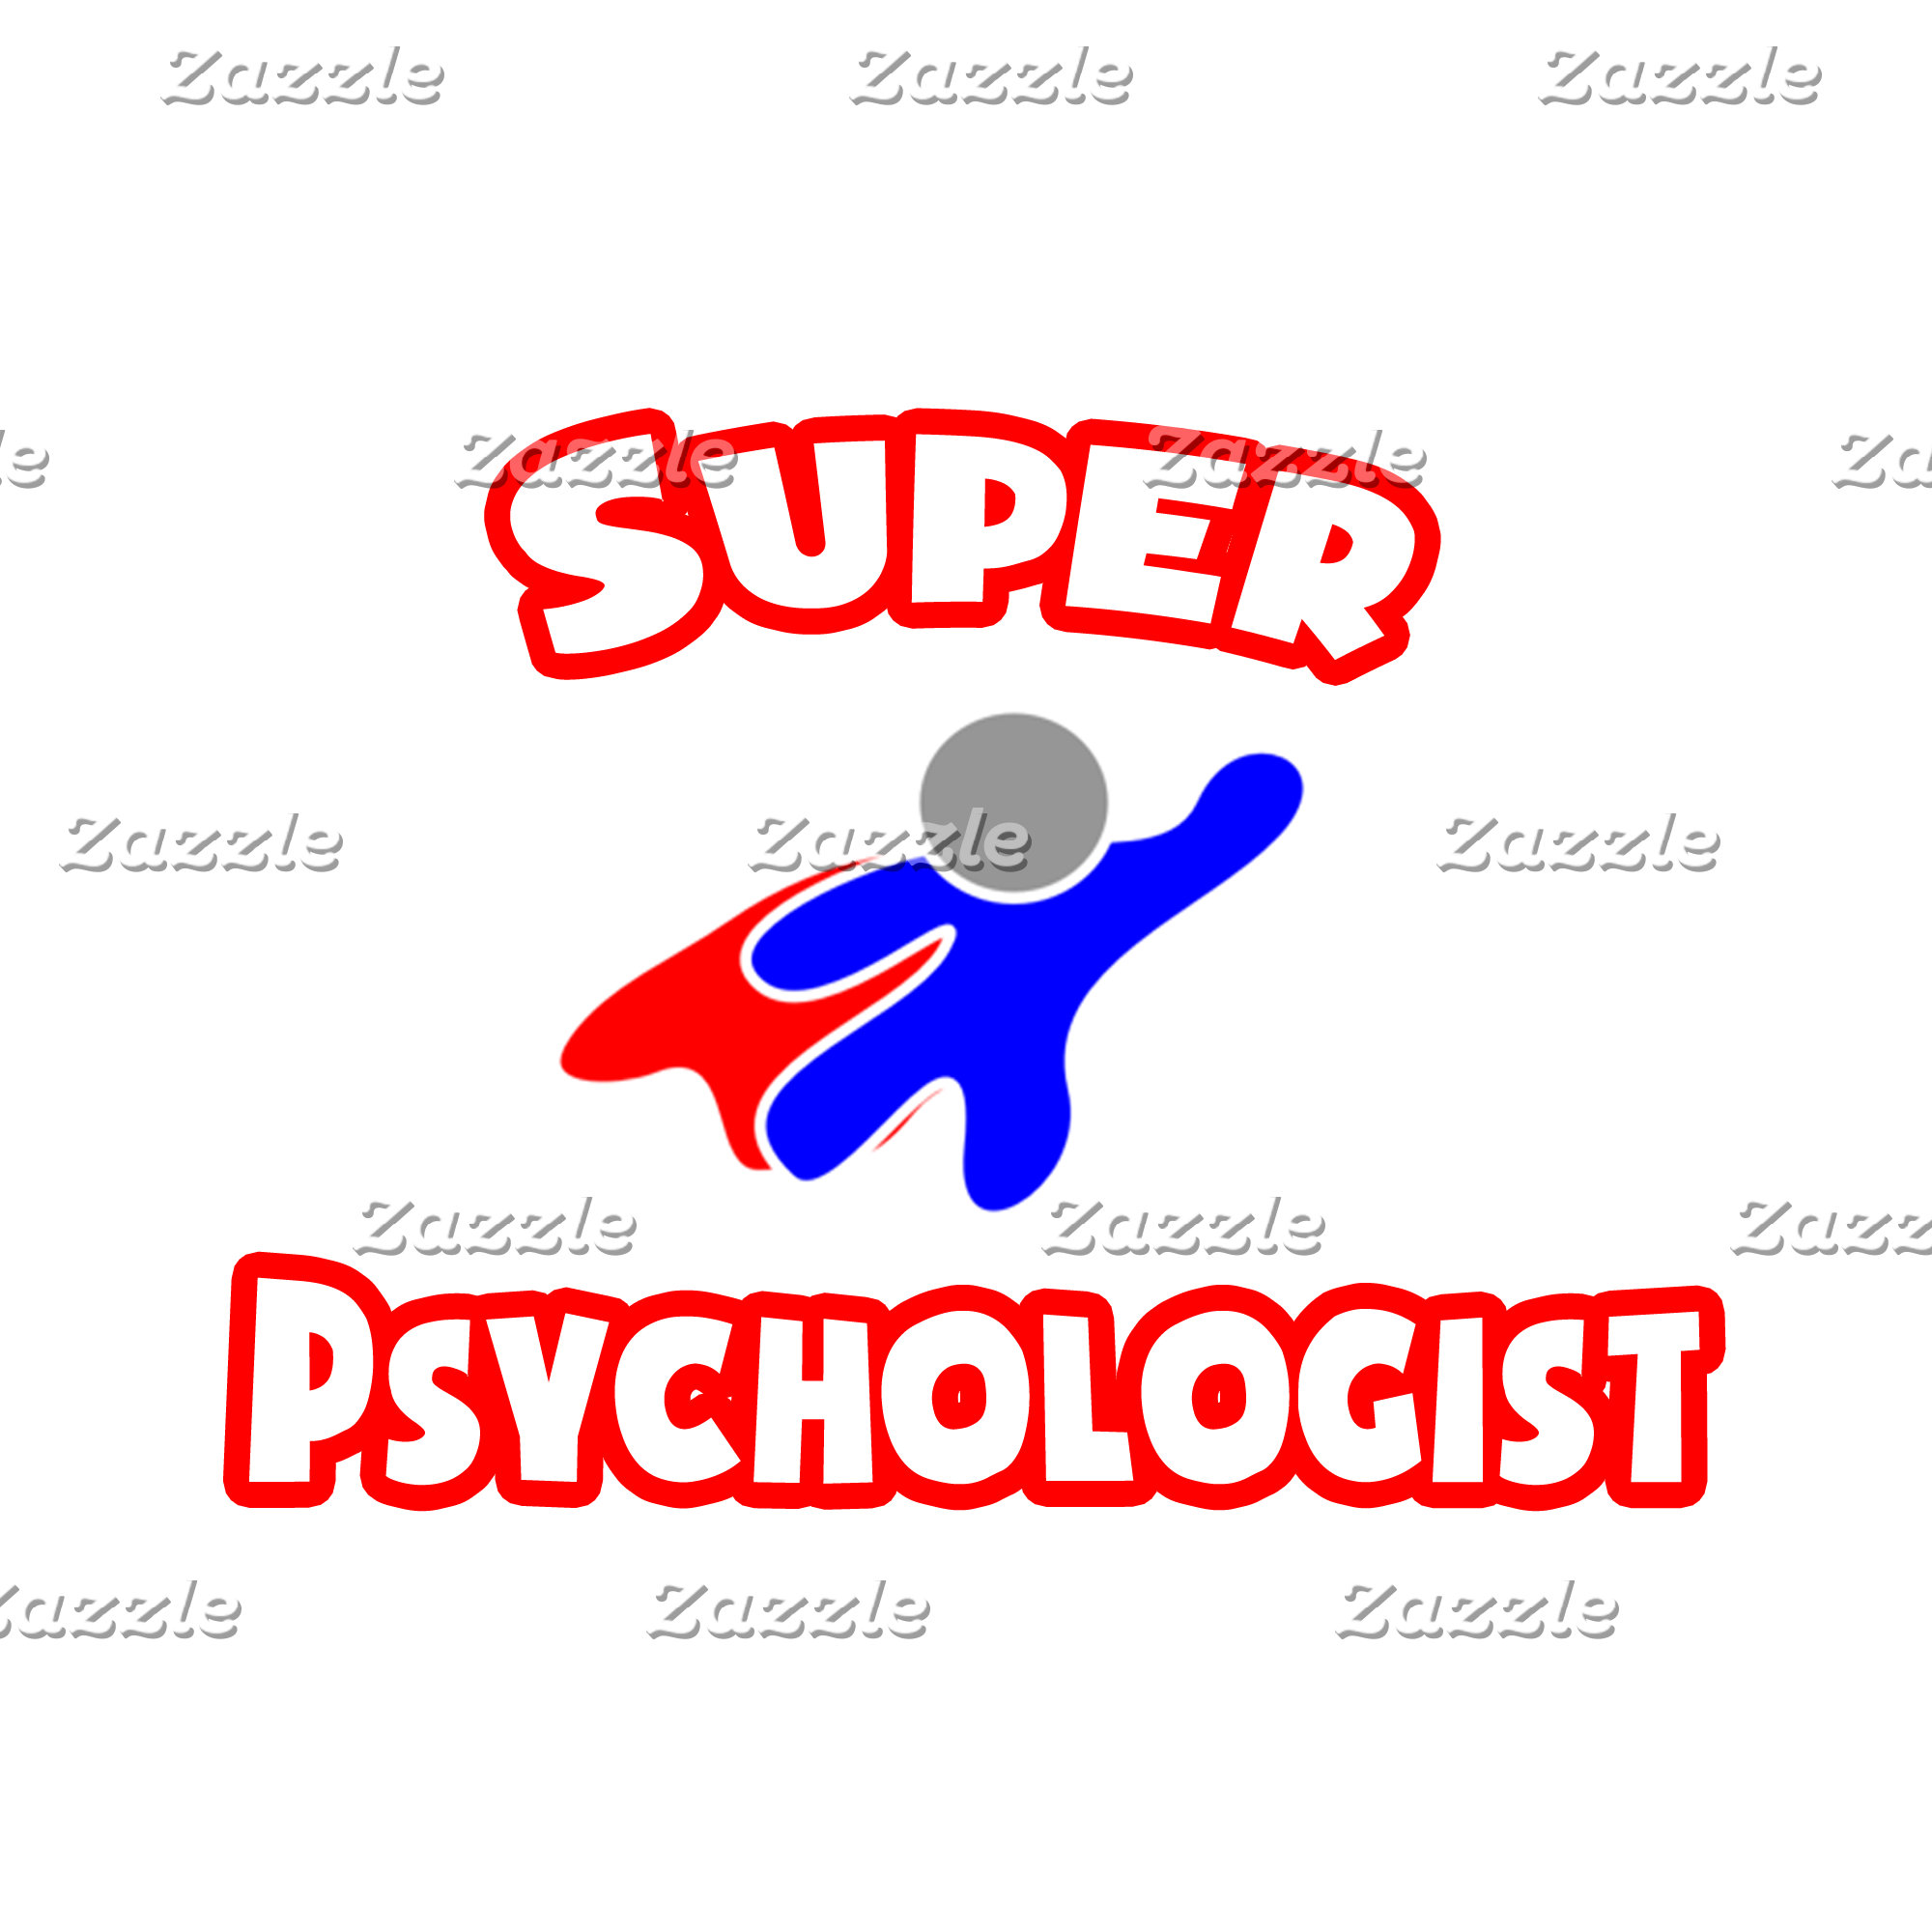 Super Psychologist